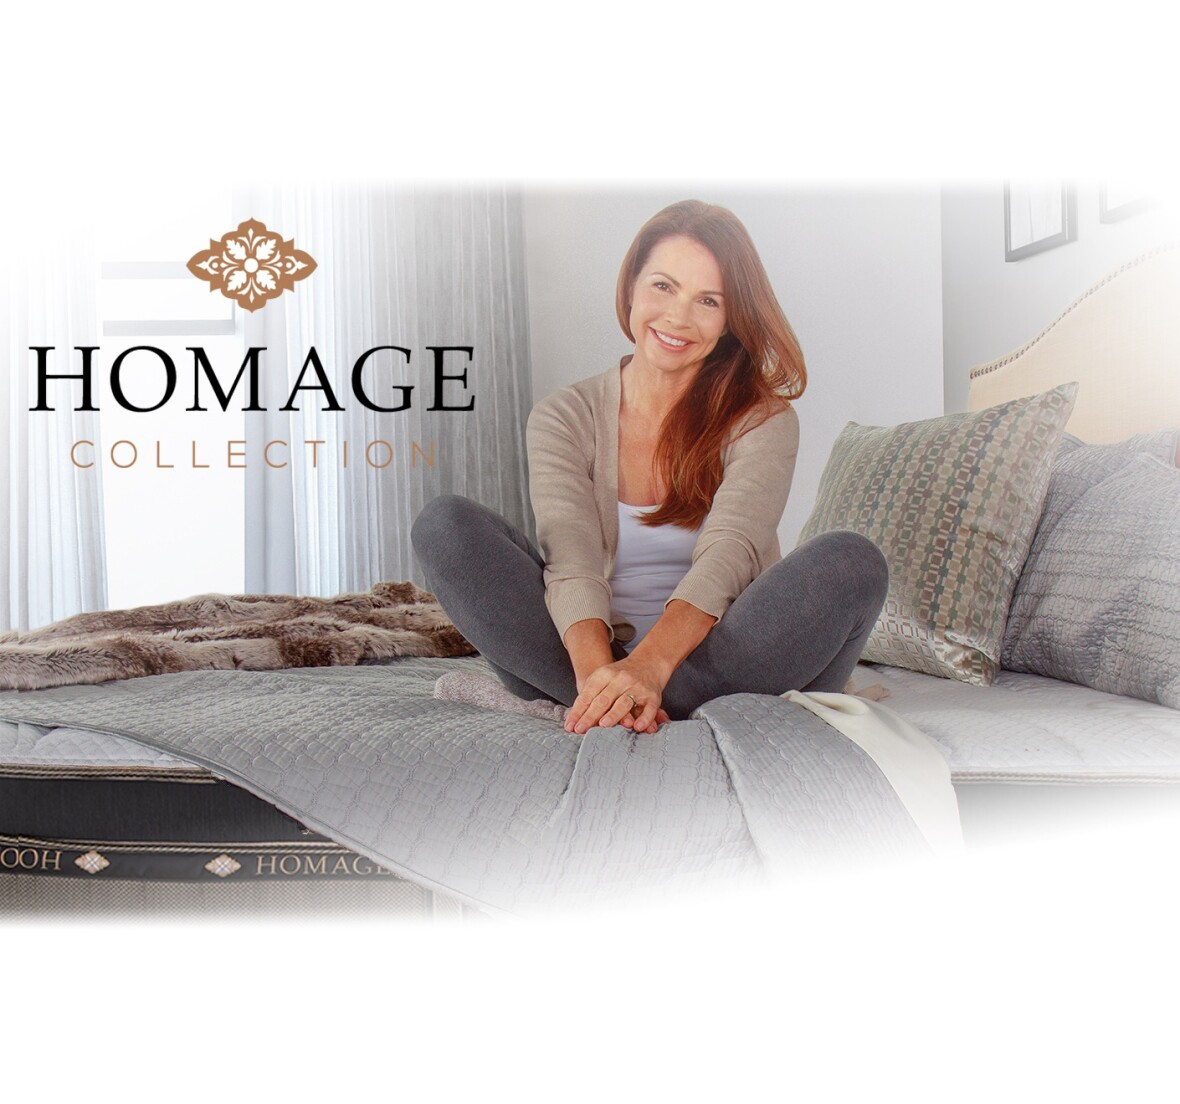 133438_Homage_Excellence Boxtop Mattress (5).jpg